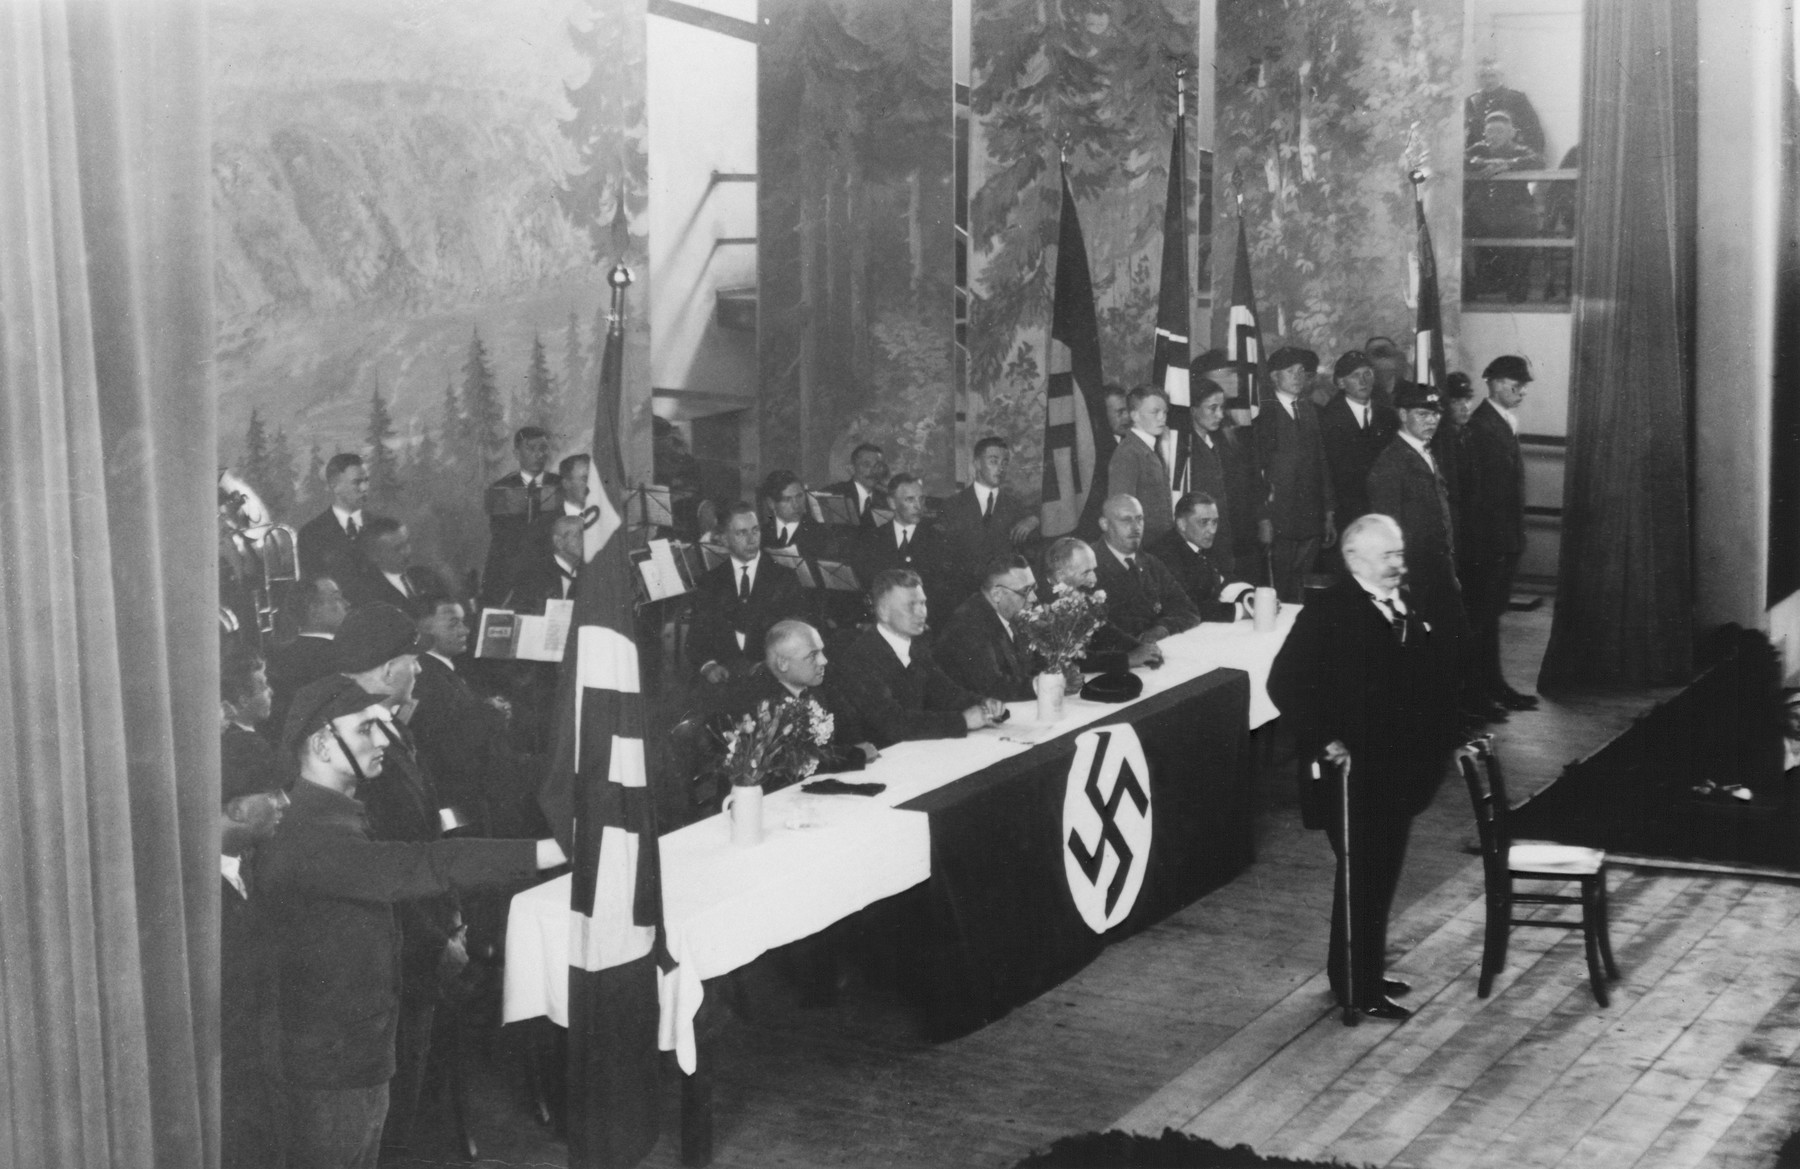 General Karl Litzmann speaks to a gathering of Nazi officials at the Stadthalle in Bad Blankenburg.  An orchestra sits behind the speakers' table.